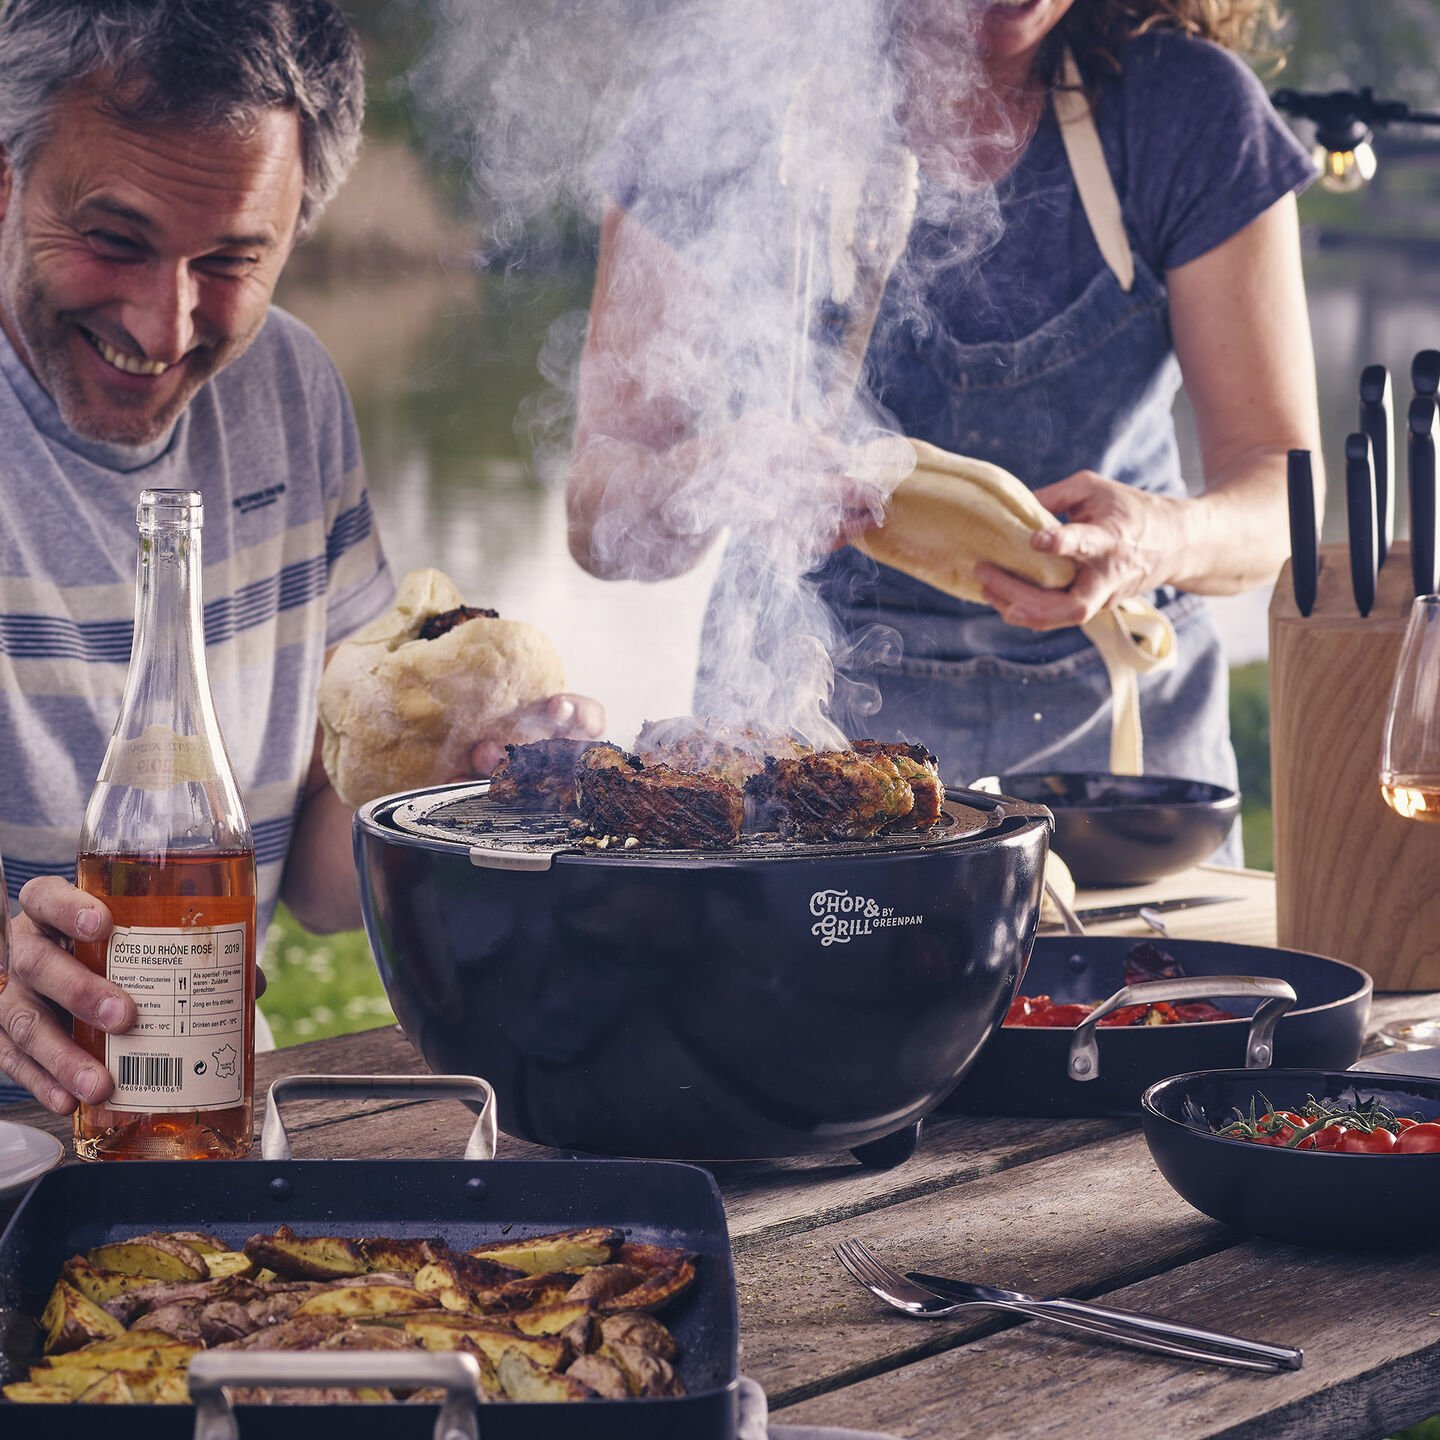 Chop & Grill Tabletop Barbecue